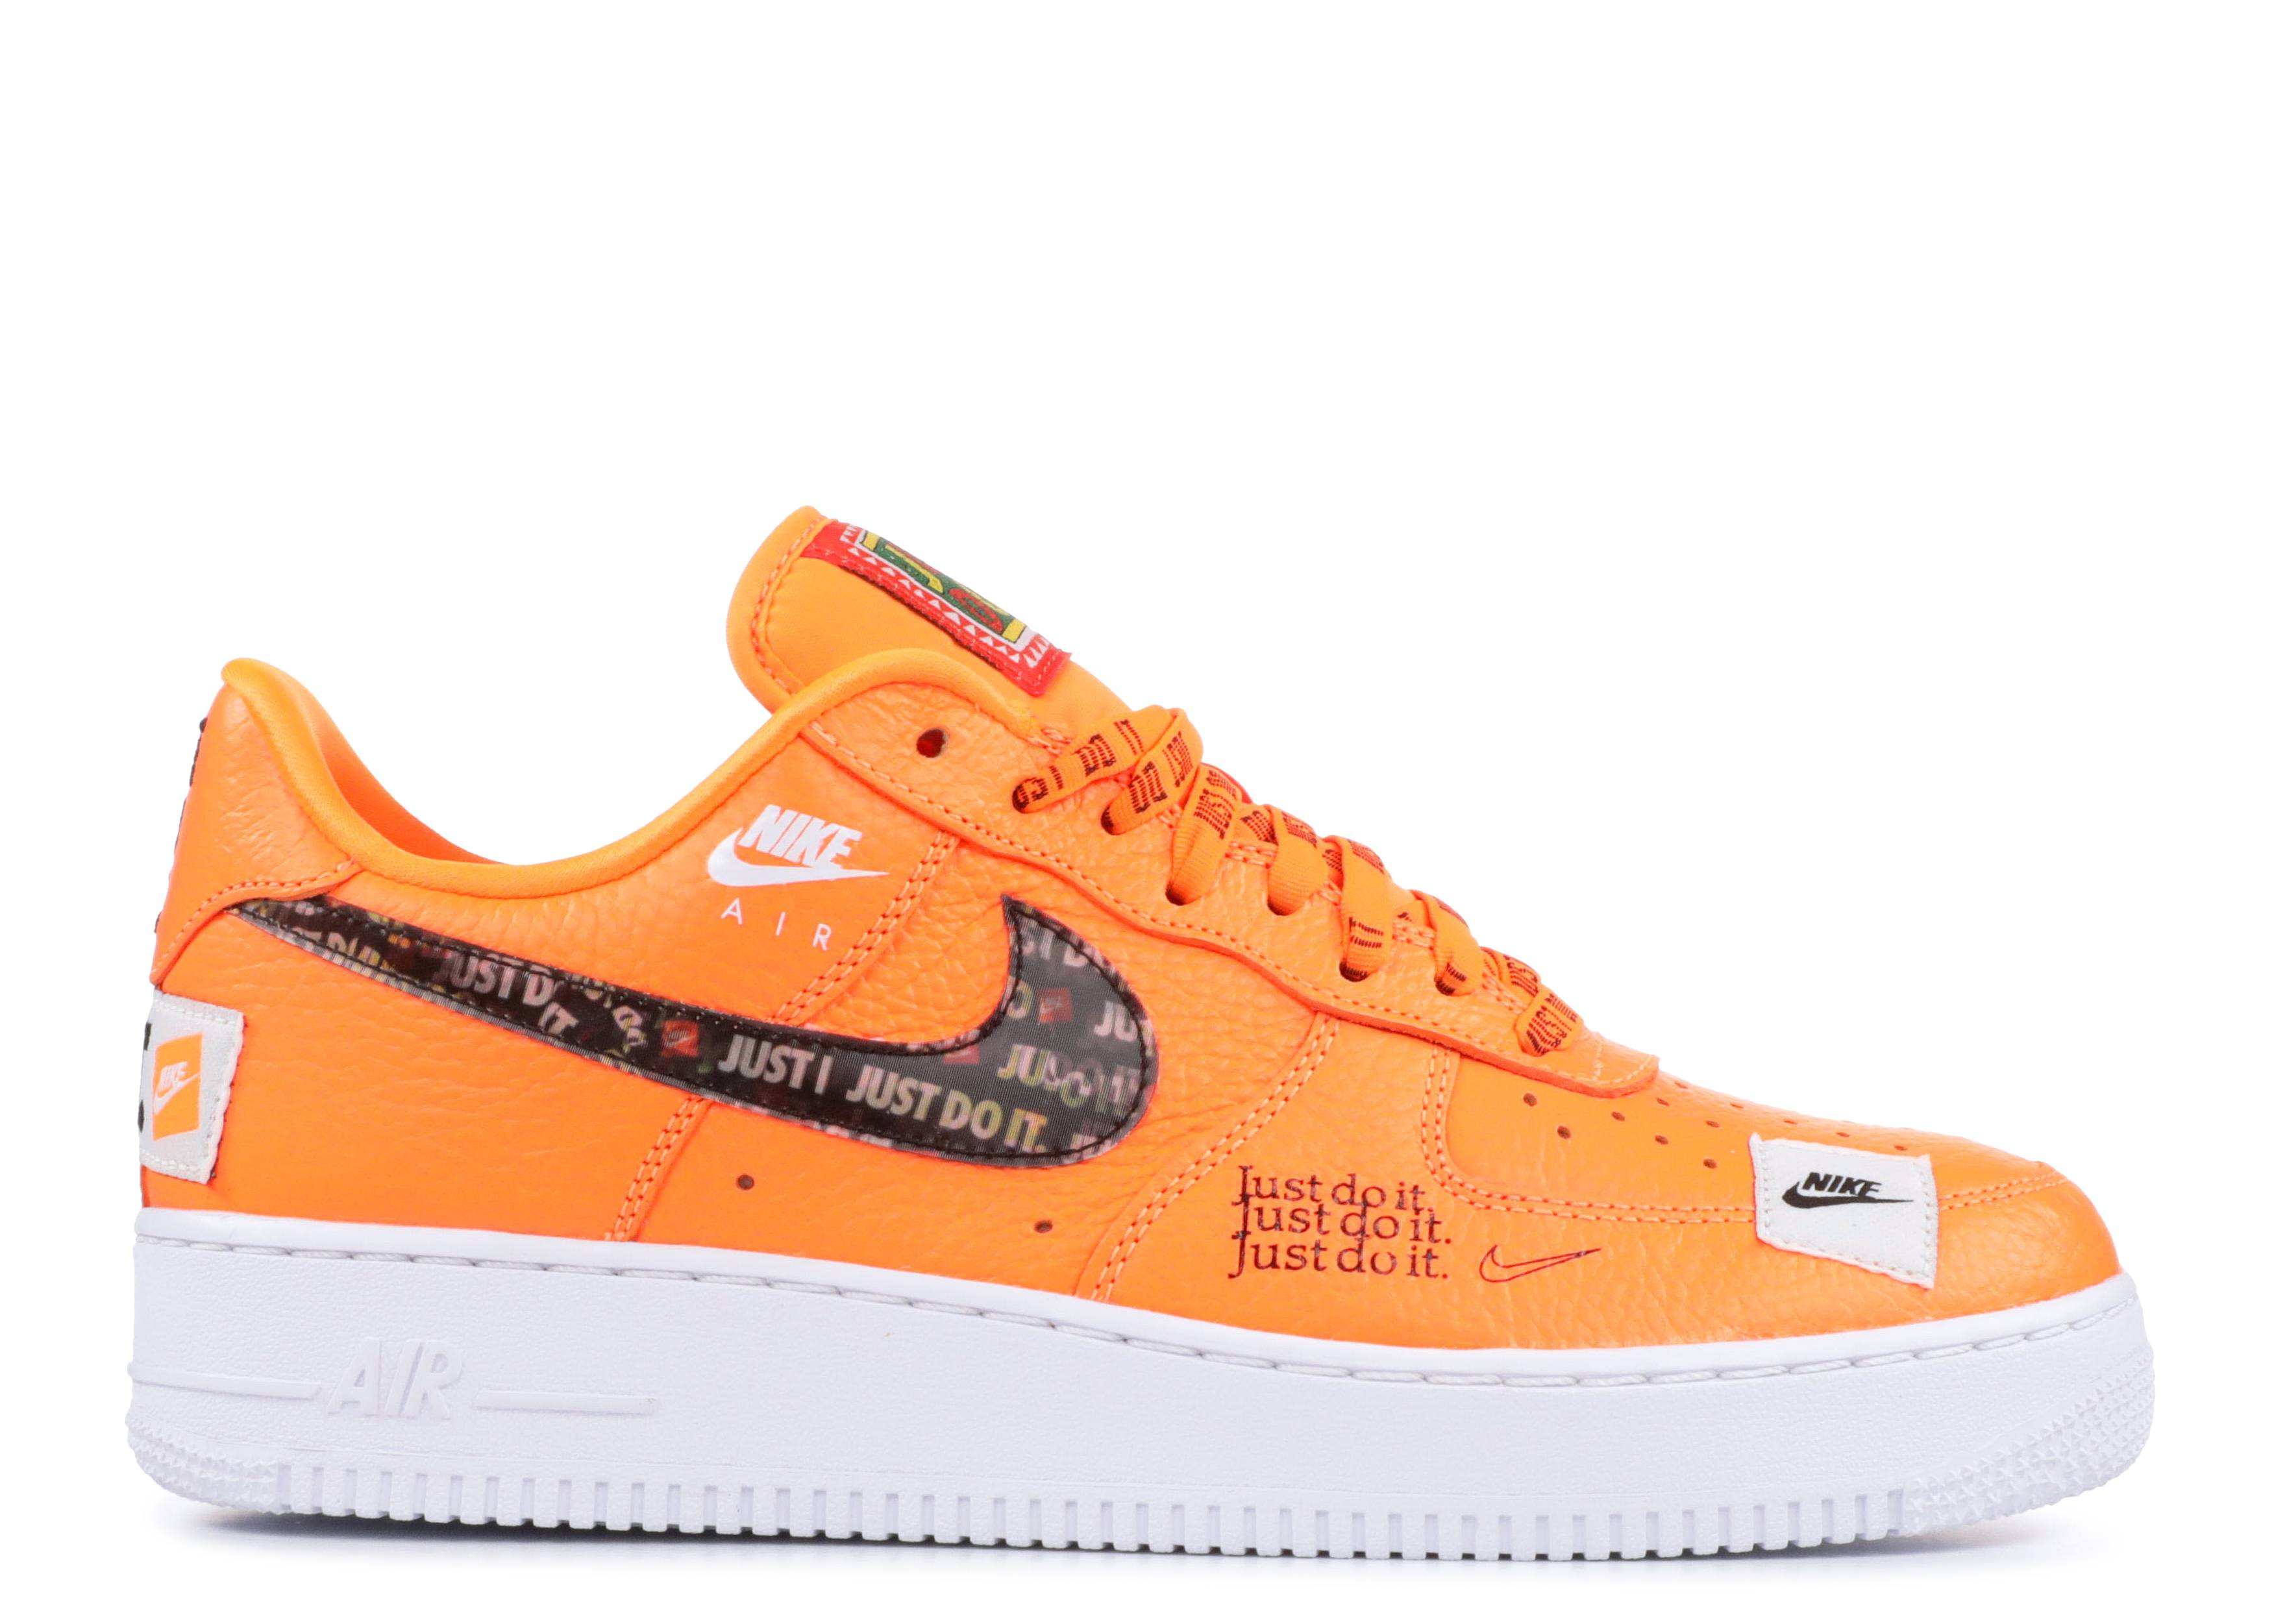 nike. air force 1 07 prm jdi